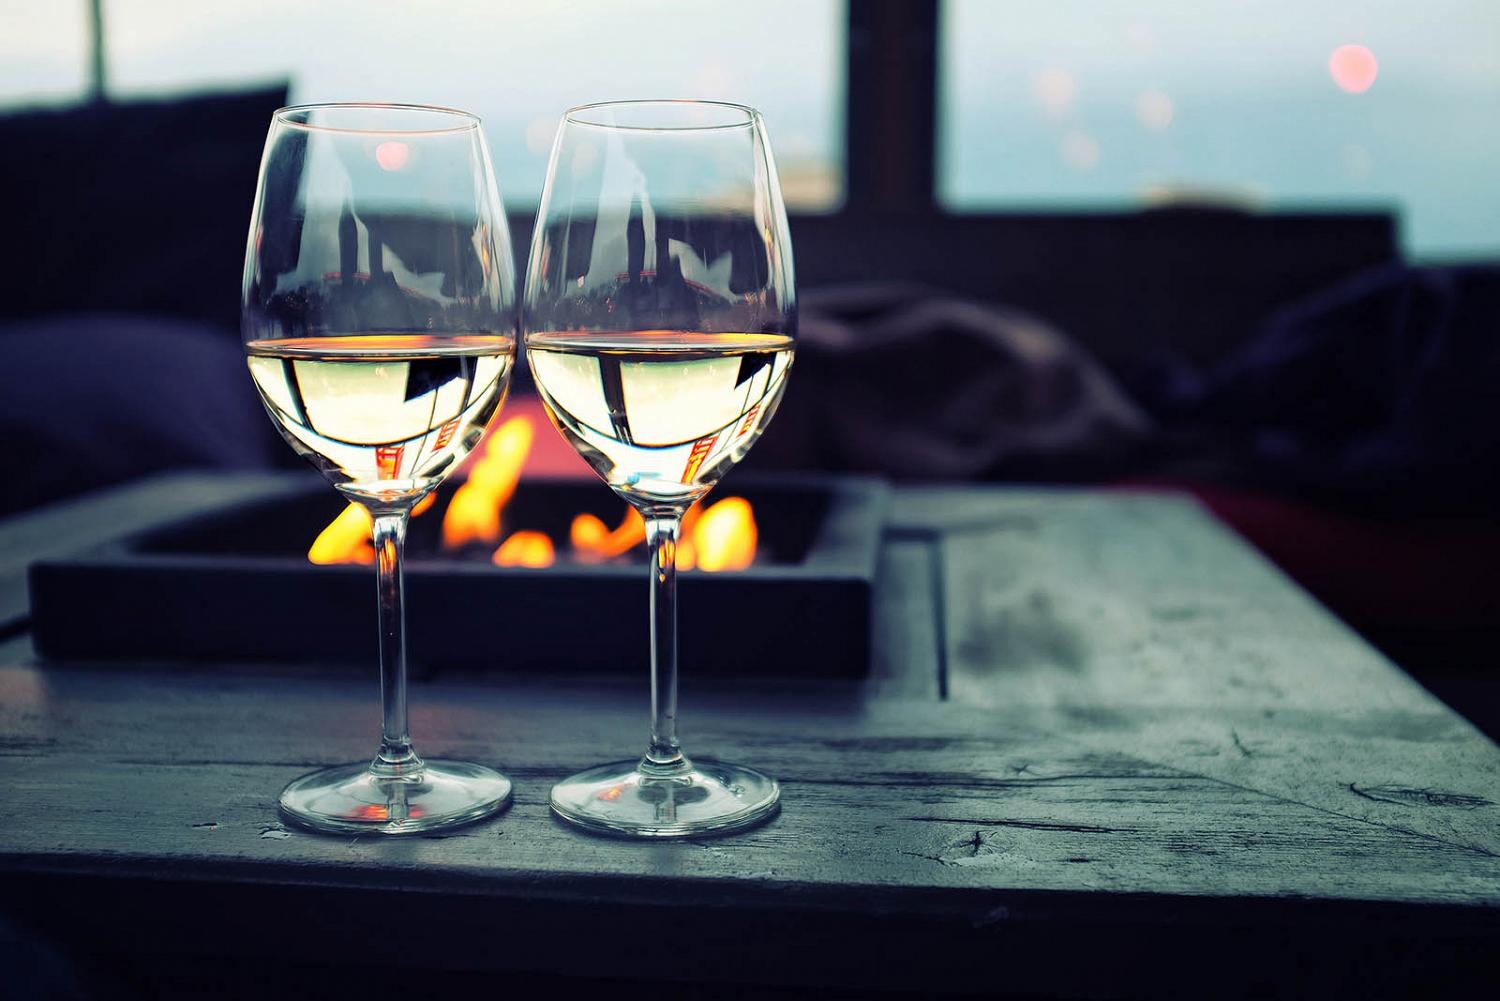 Two glasses of white wine near an outdoor fire